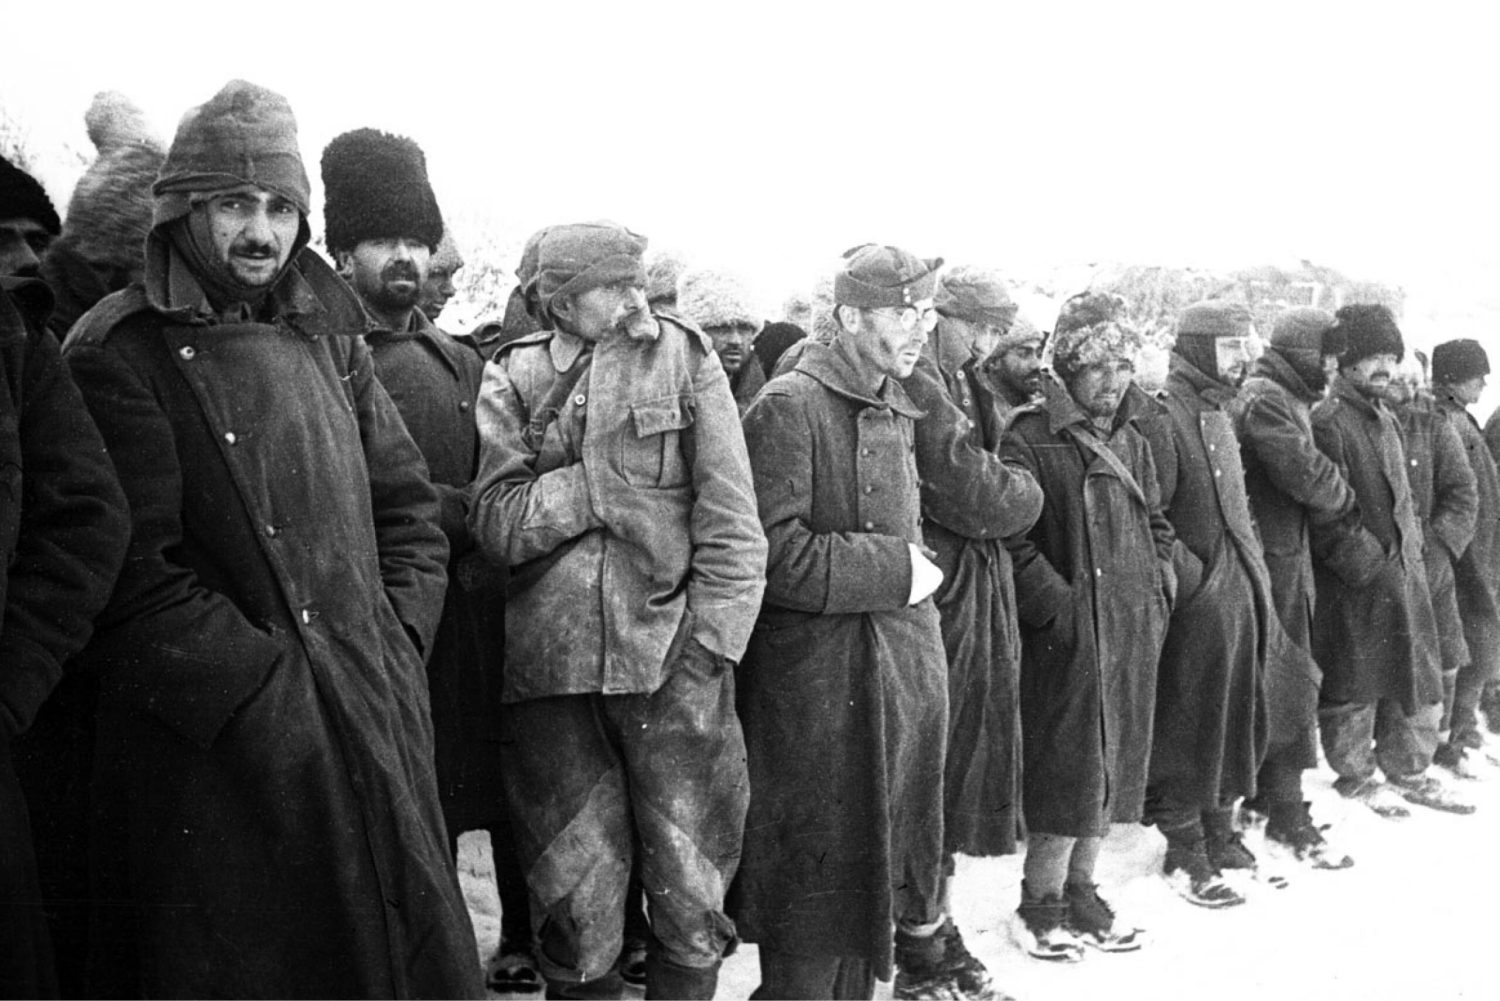 below Romanian prisoners at Stalingrad. opposite The Russian counter-offensive in southern Russia in winter 1942/43. The vast distances covered meant that the German armies became over-extended, with weak flanks, vulnerable supply-lines, and a lack of reserves. Marshal Zhukov's counter-offensive, launched in midwinter, struck at both flanks, which caved in, and allowed the Soviets to surround Stalingrad.